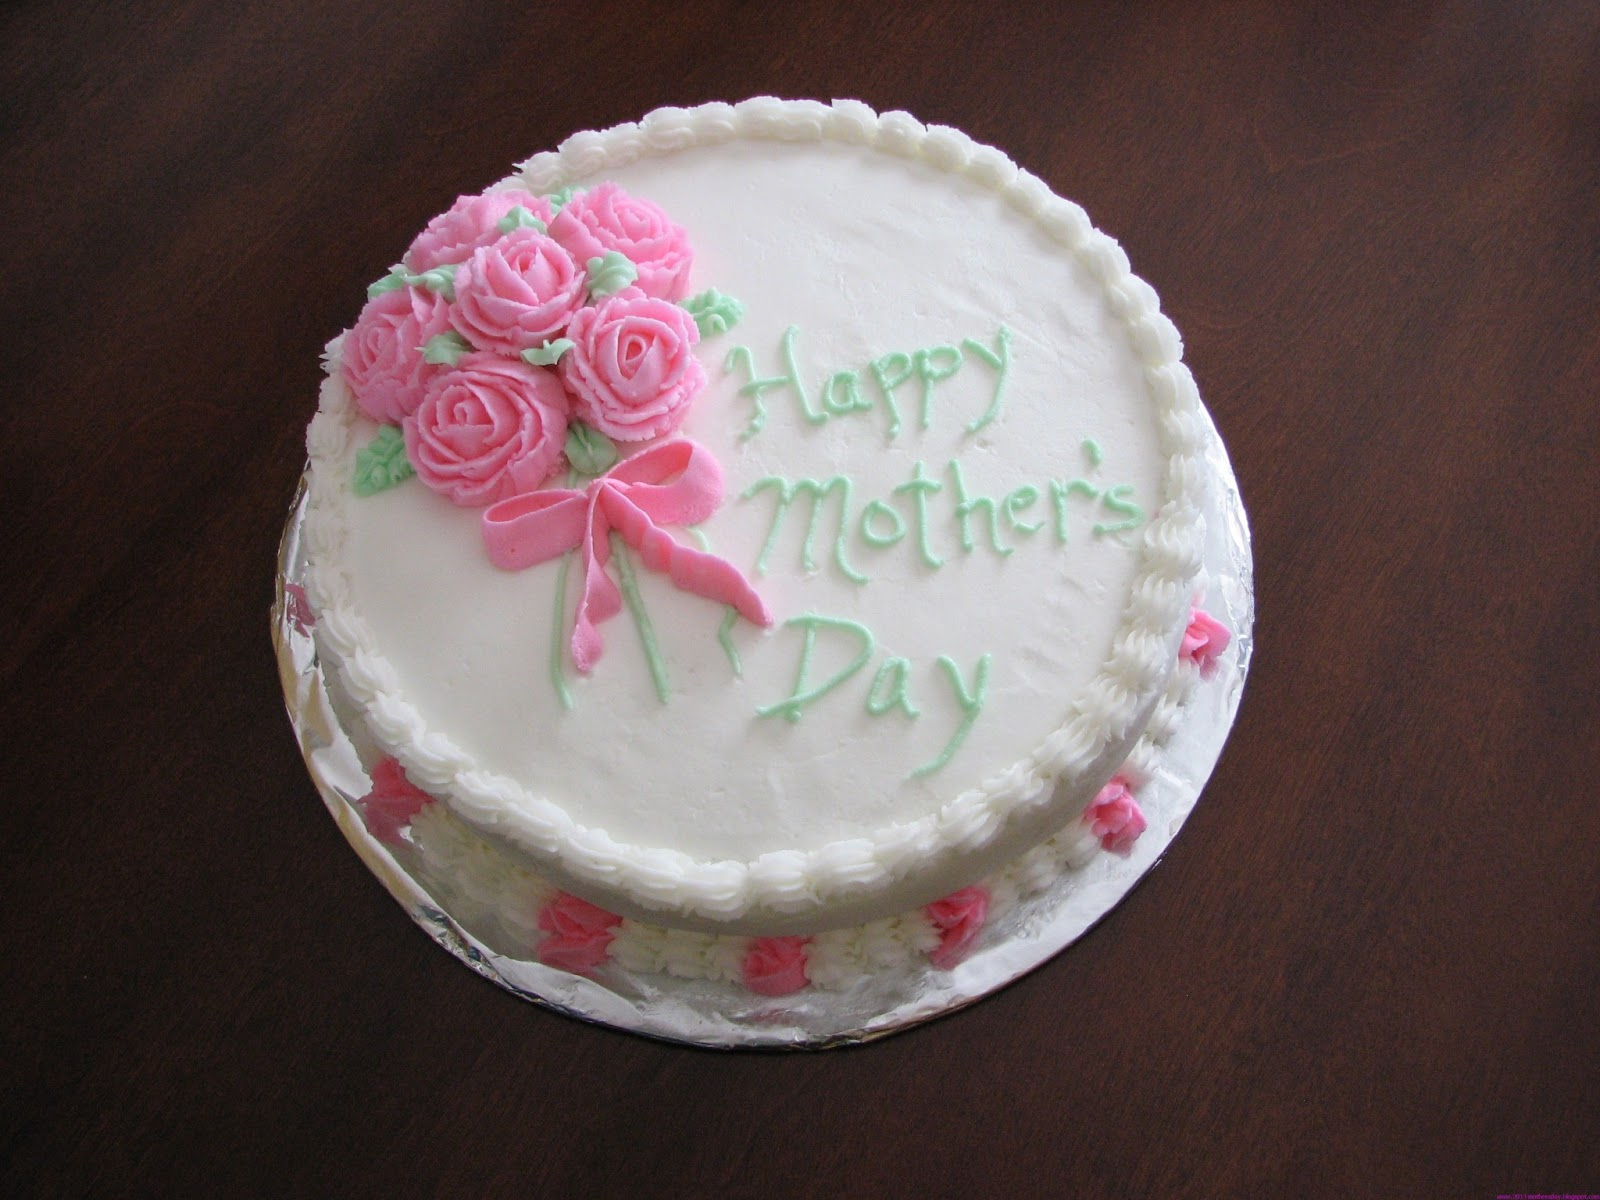 Cake Decorations For Mother S Birthday : Wallpaper Free Download: Mothers day cake Decoration And ...